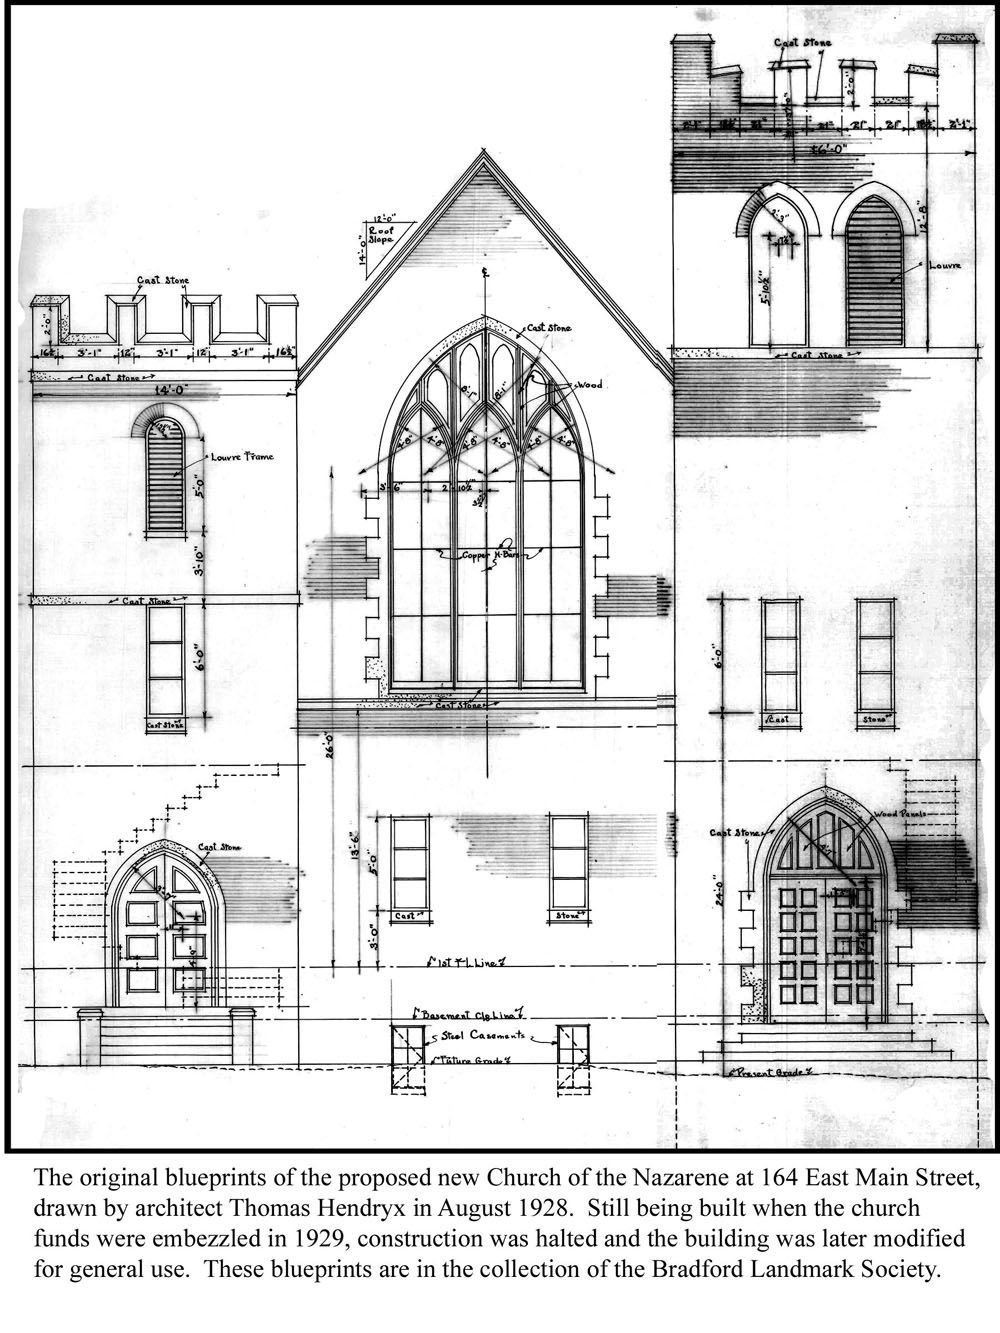 Blueprints for the Church that never was